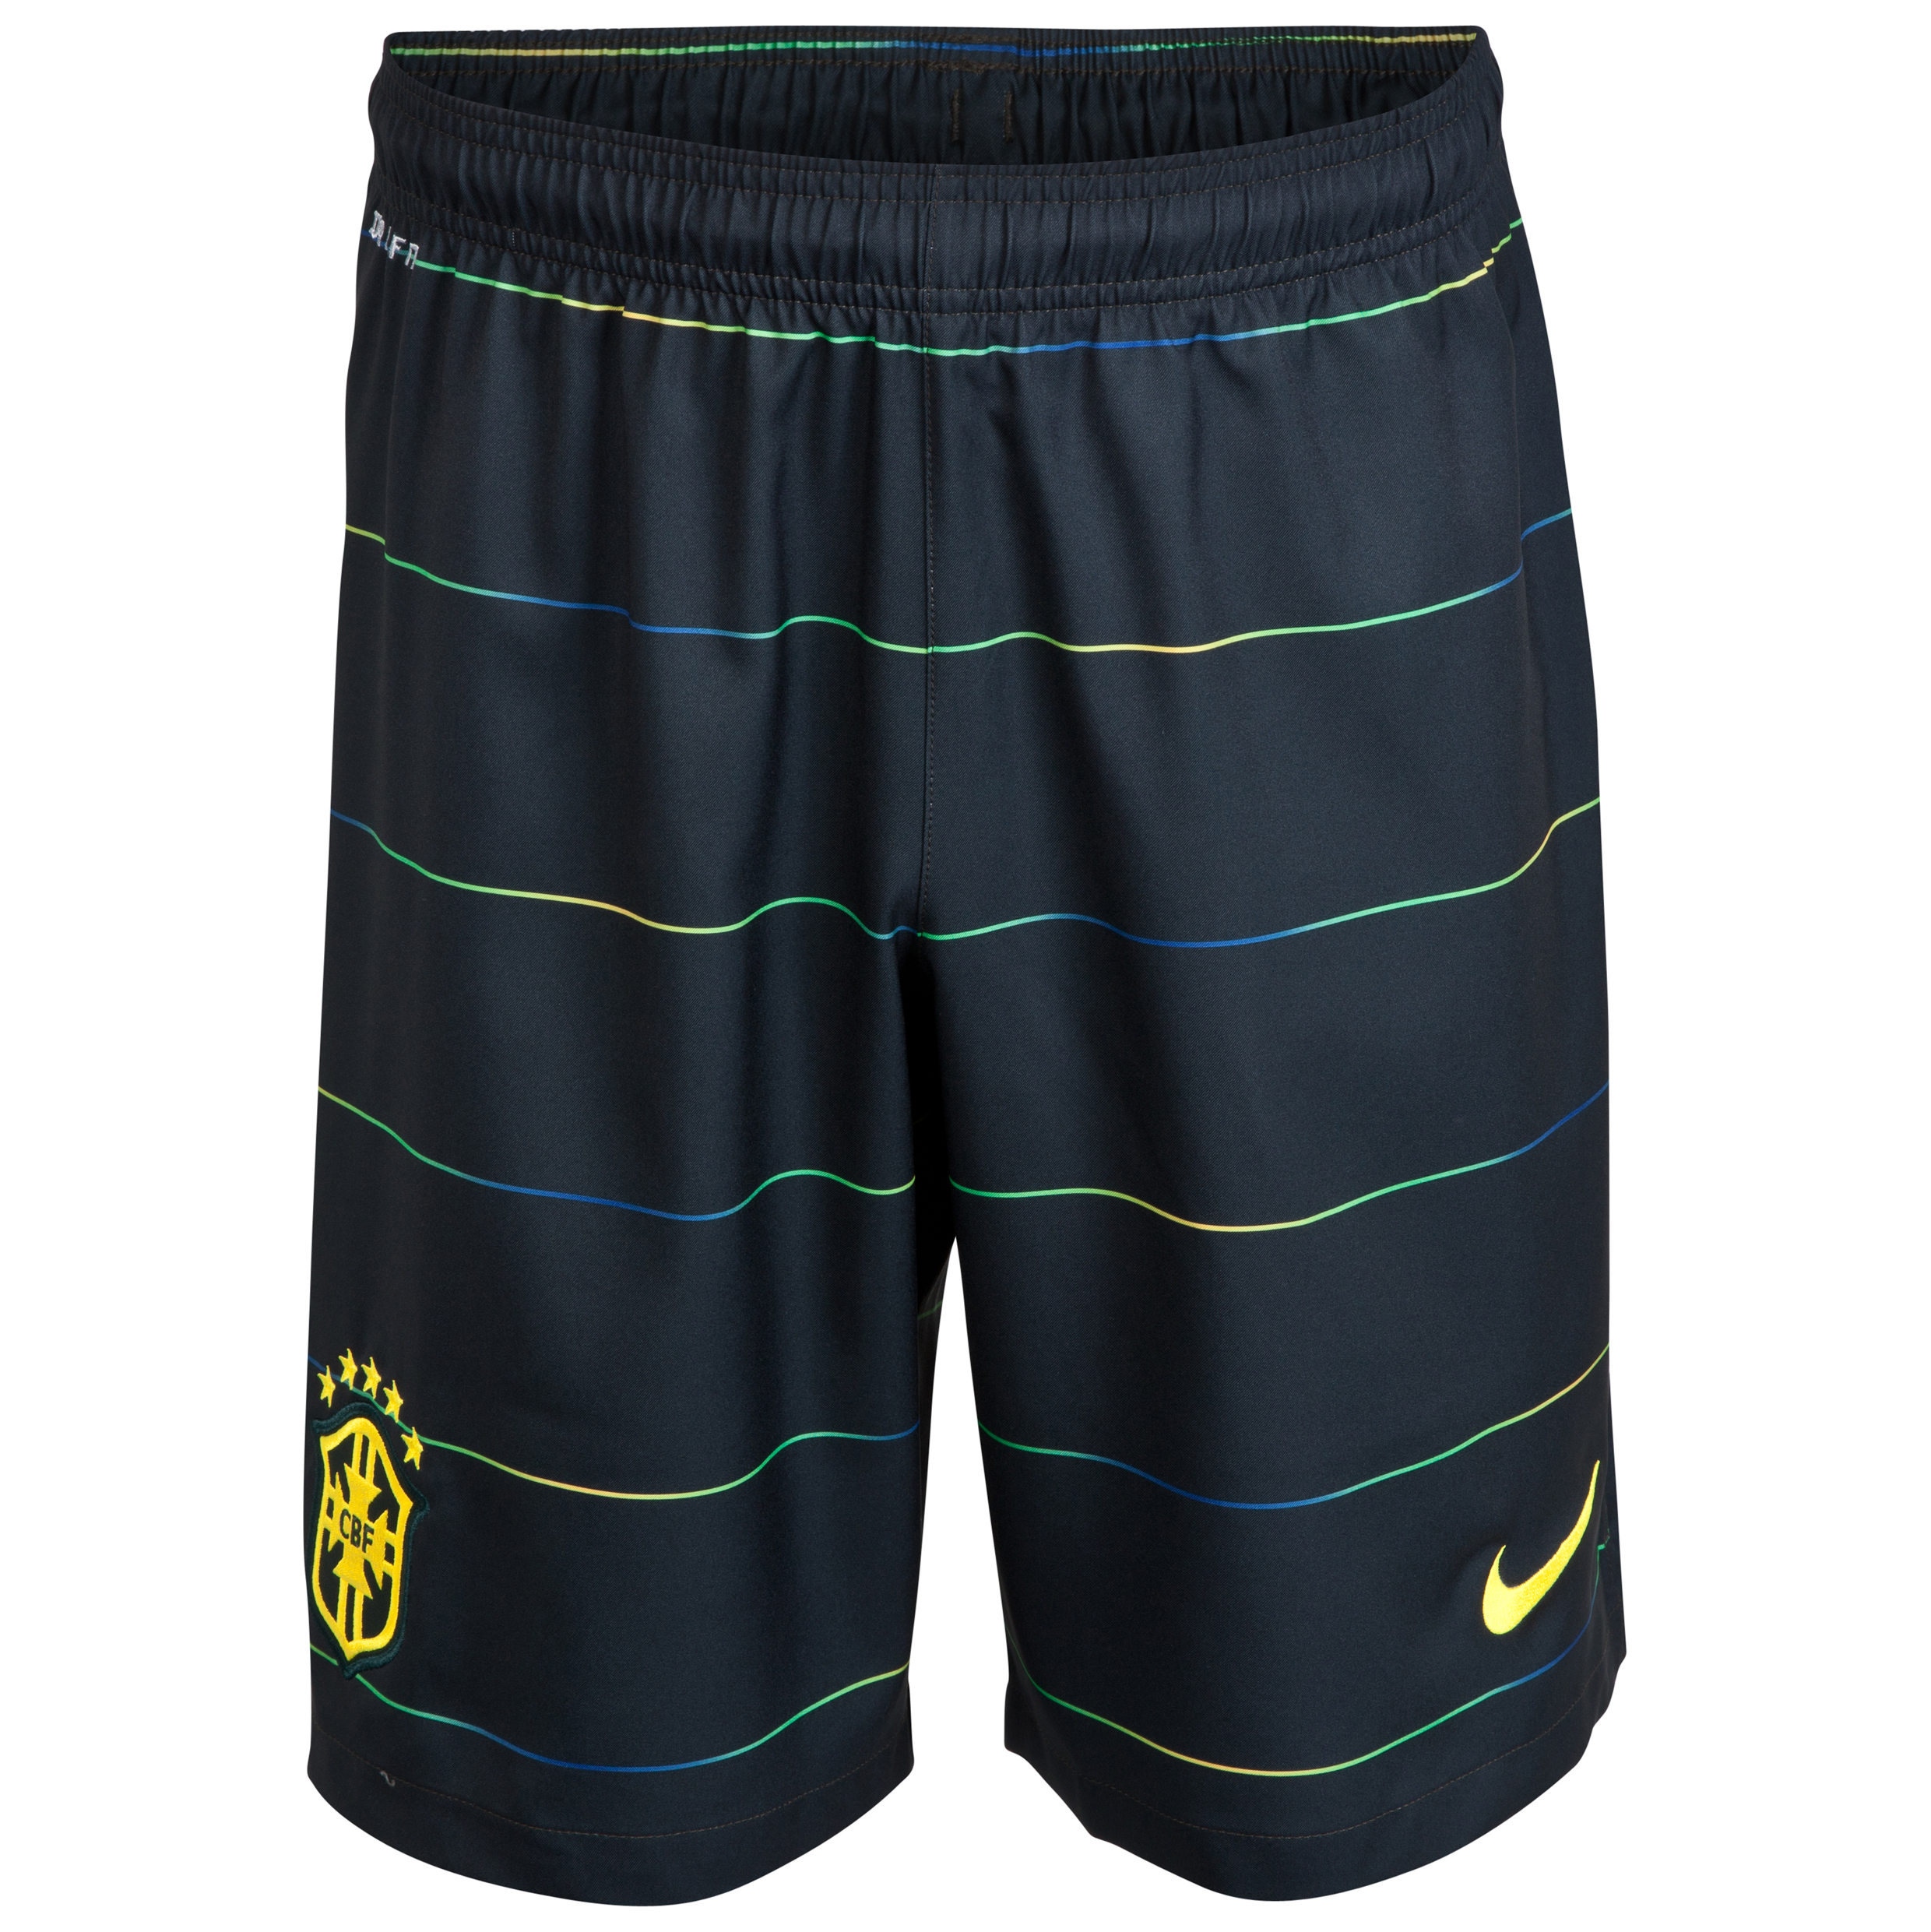 Brazil Third Shorts 2014 Black